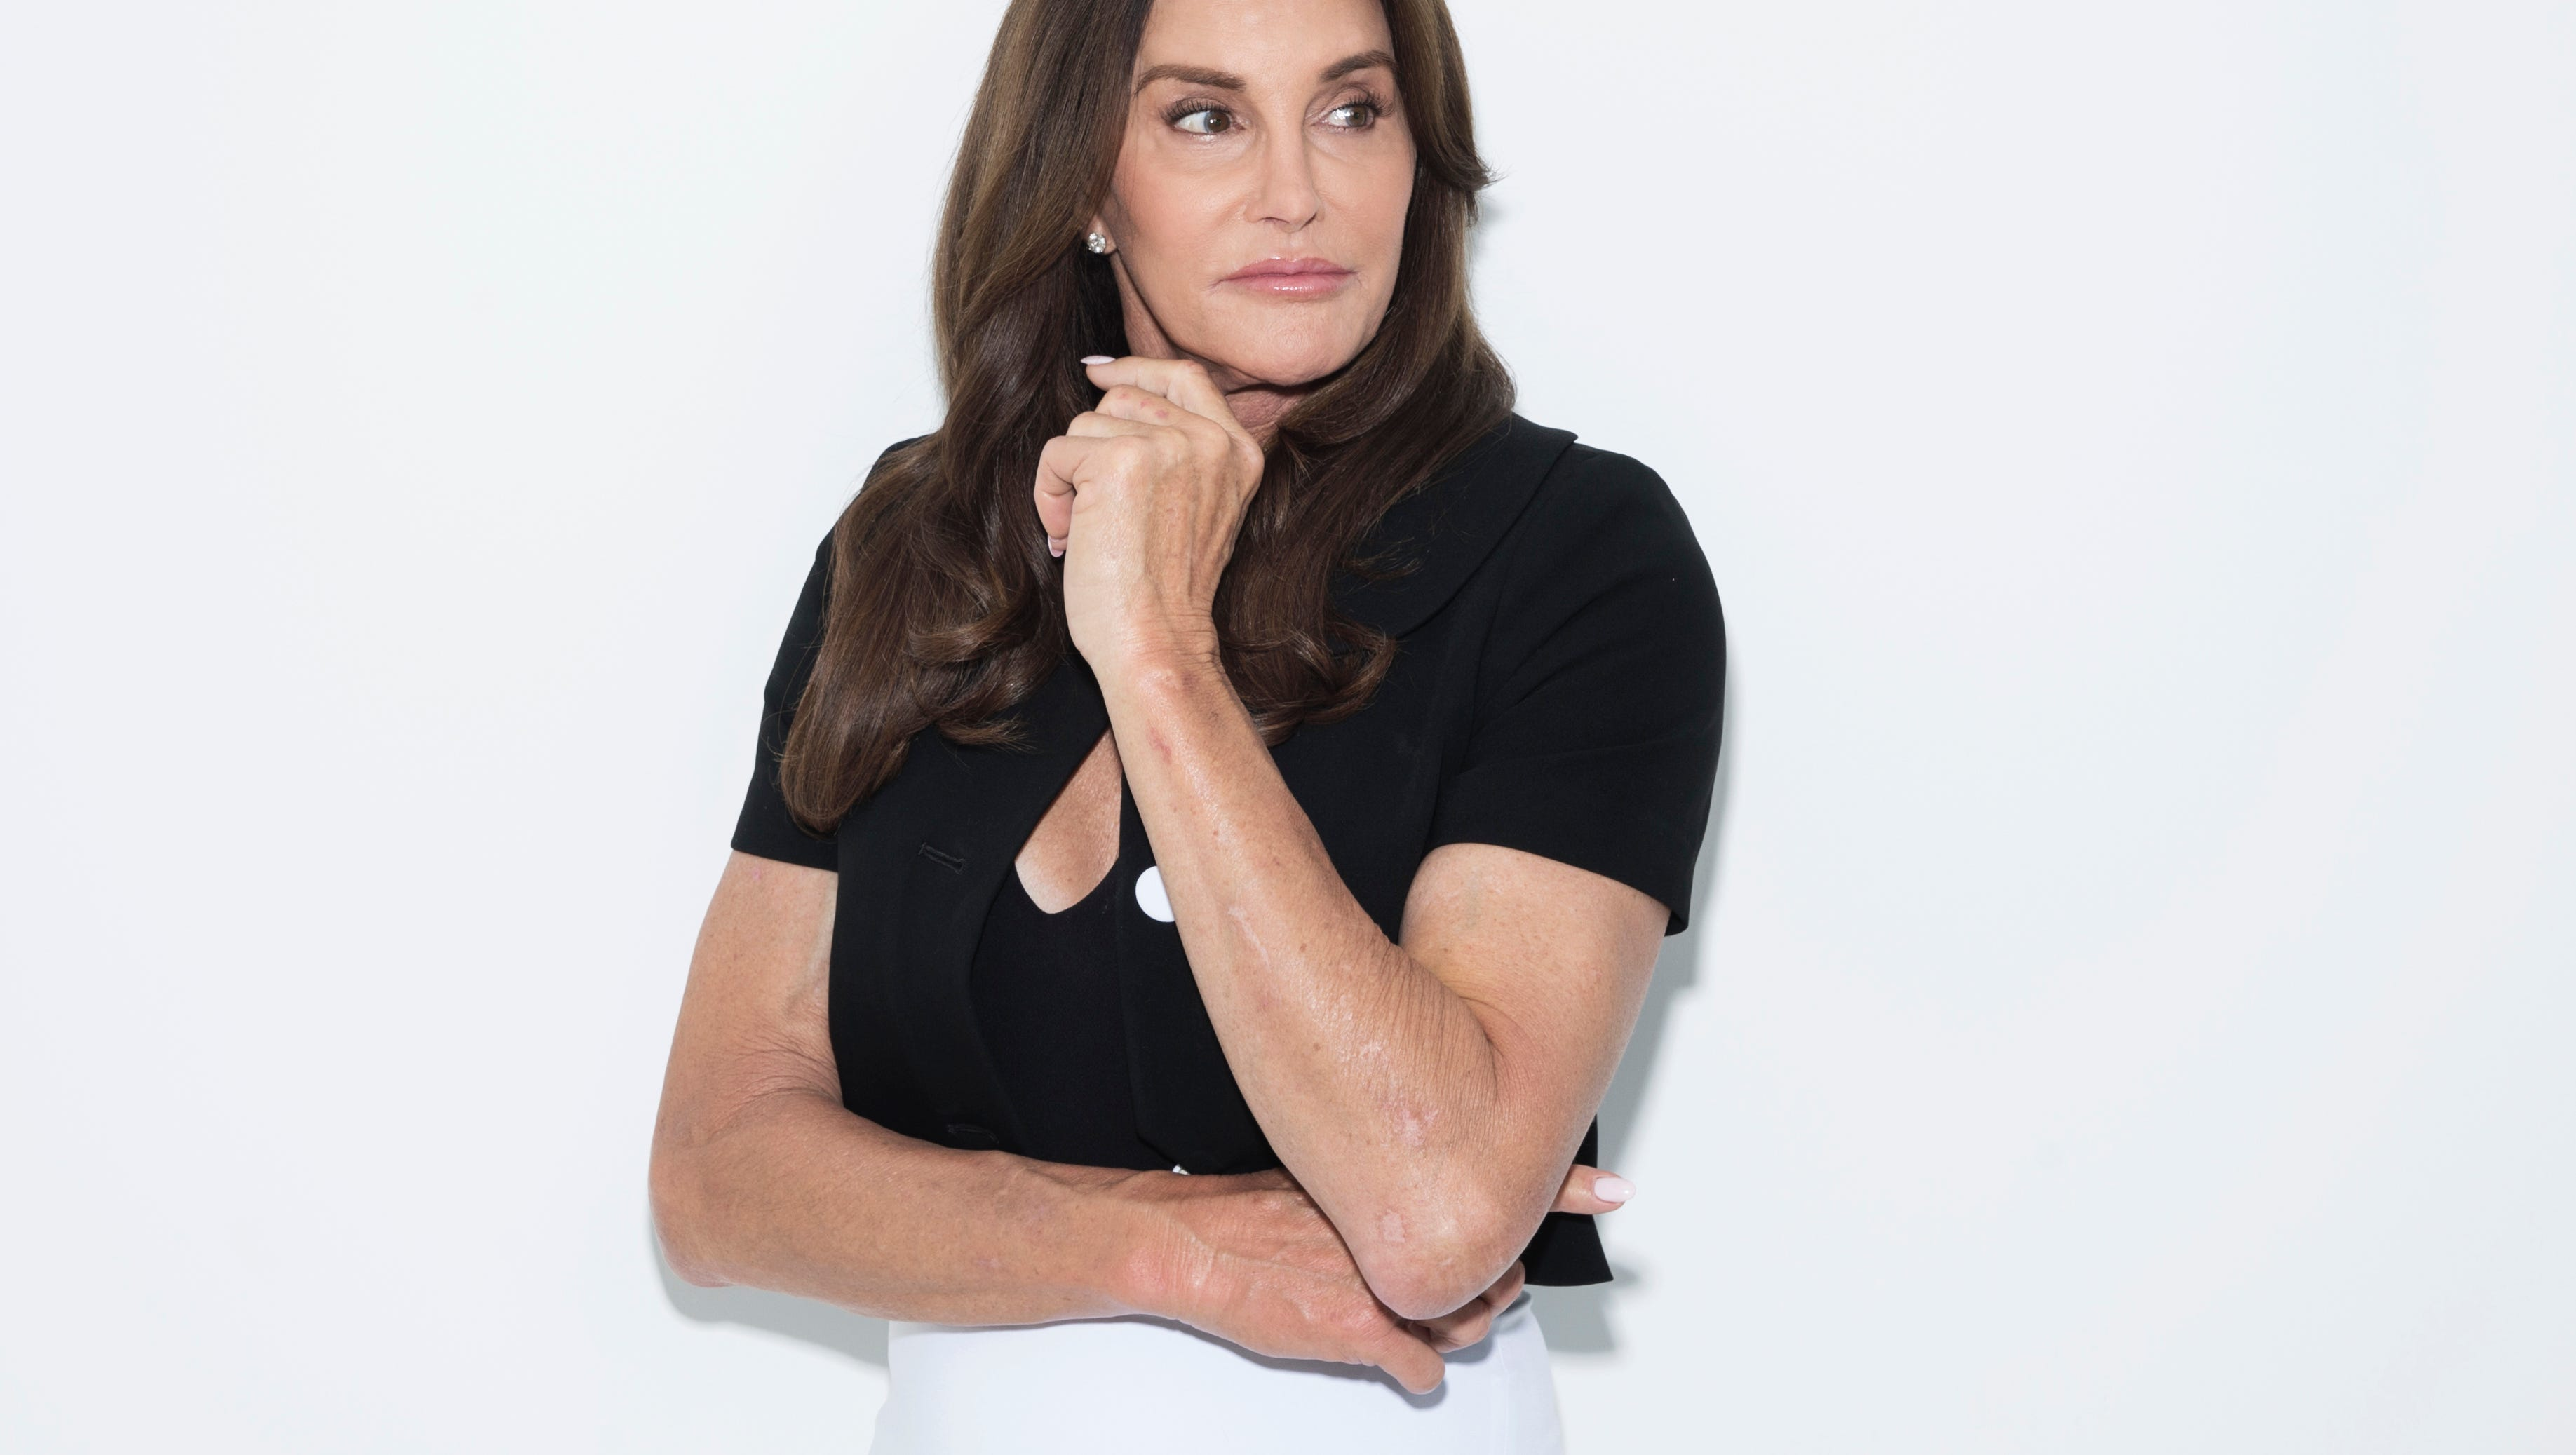 Caitlyn Jenner still happy with gender reassignment